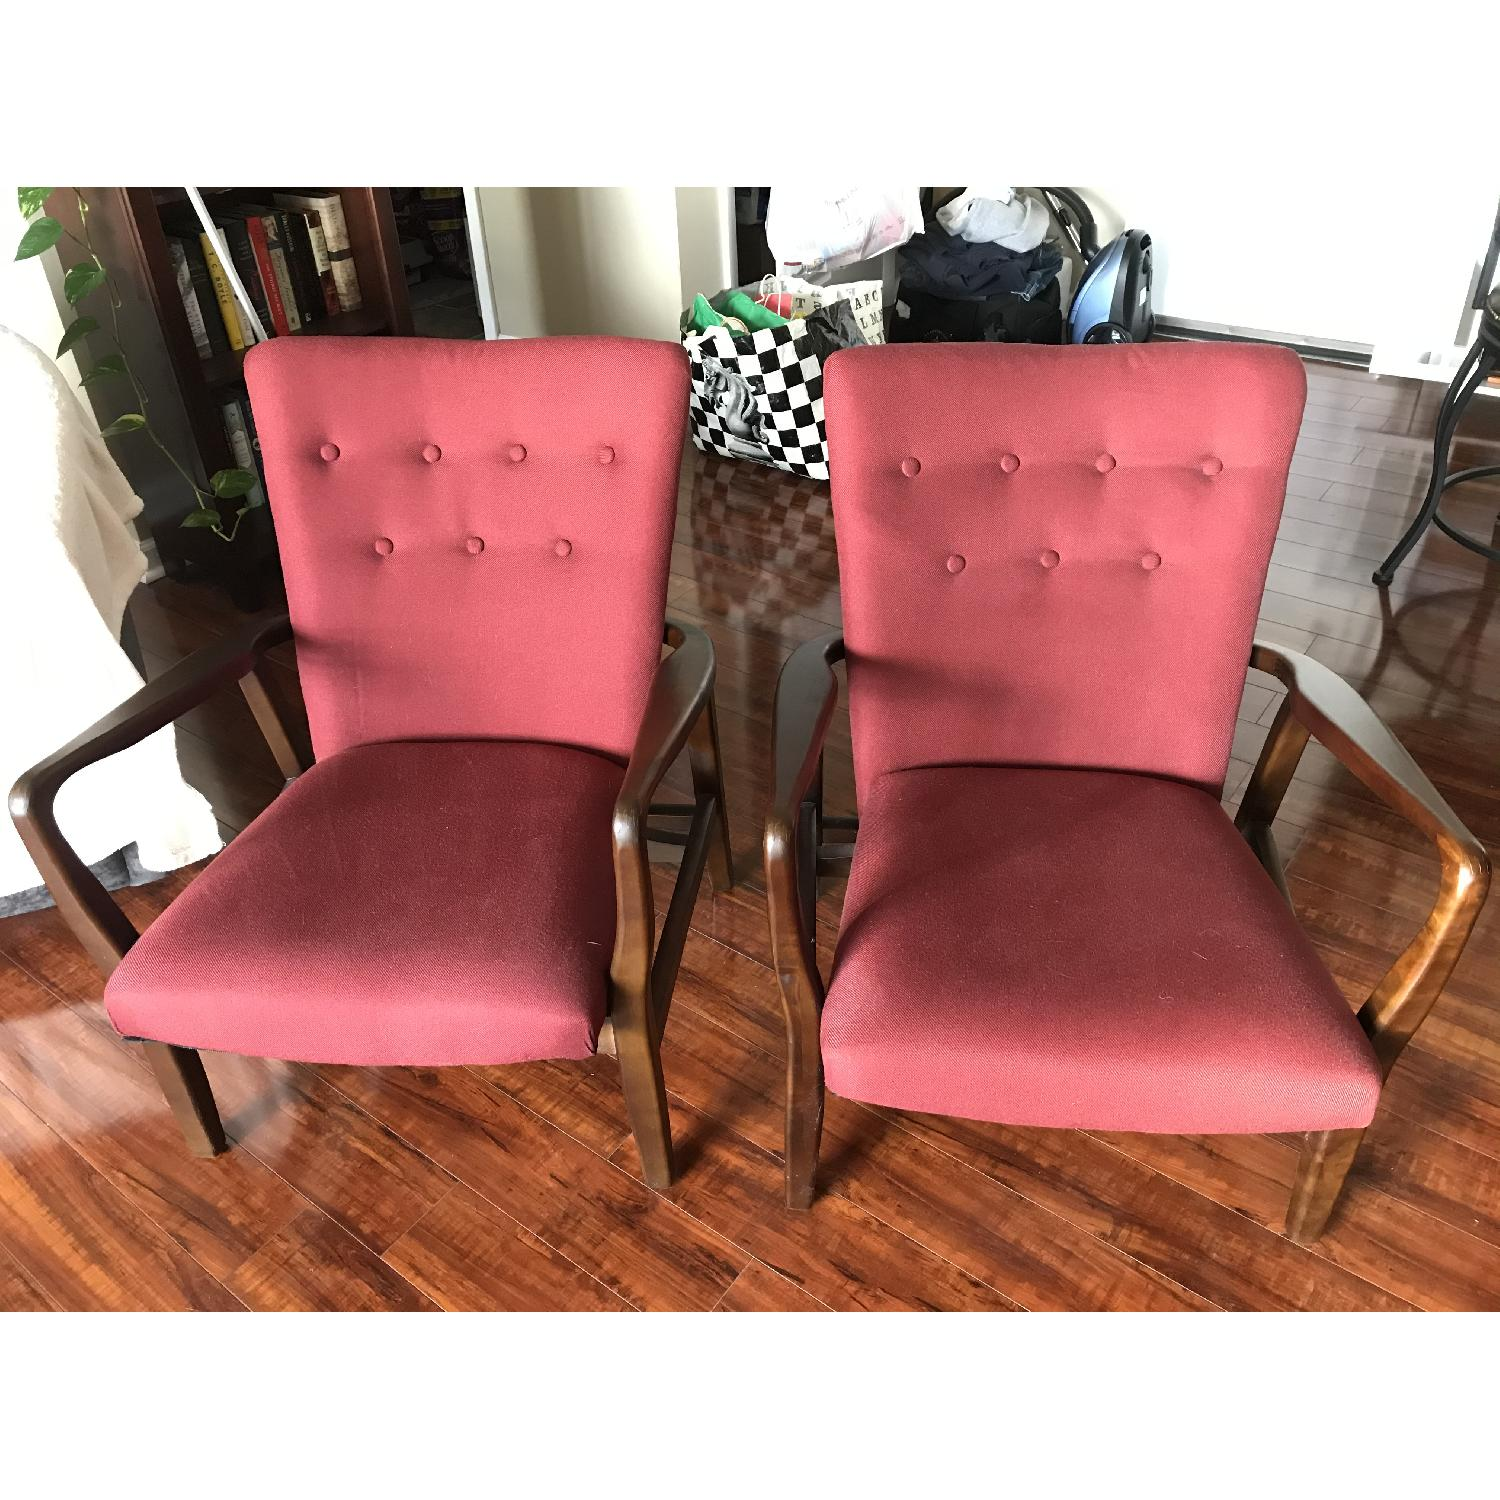 Burgundy Accent Chairs - image-4